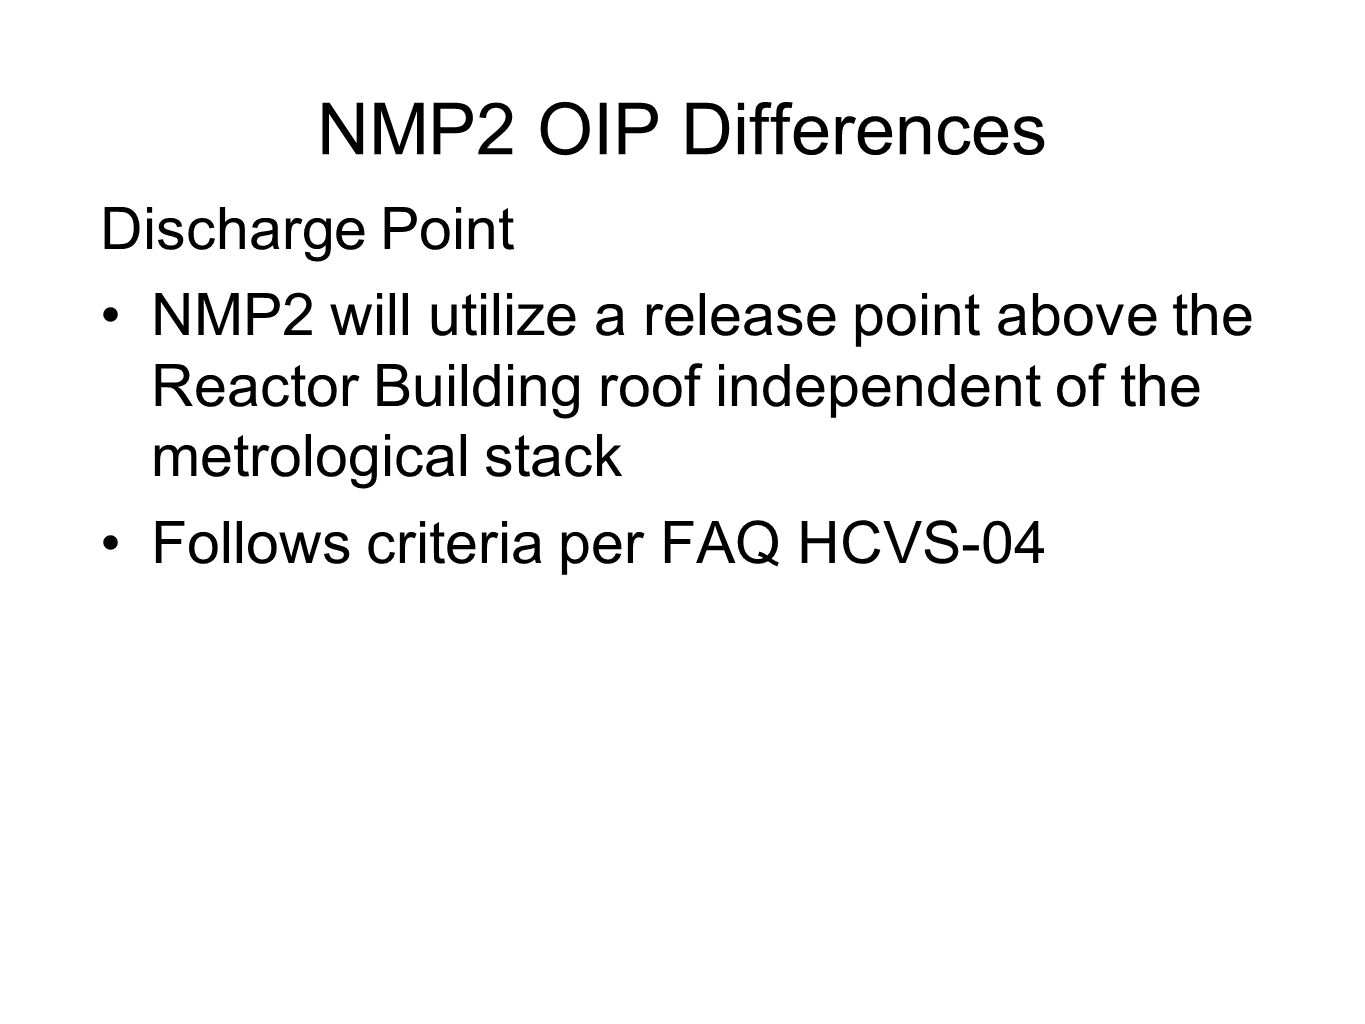 NMP2 OIP Differences Discharge Point